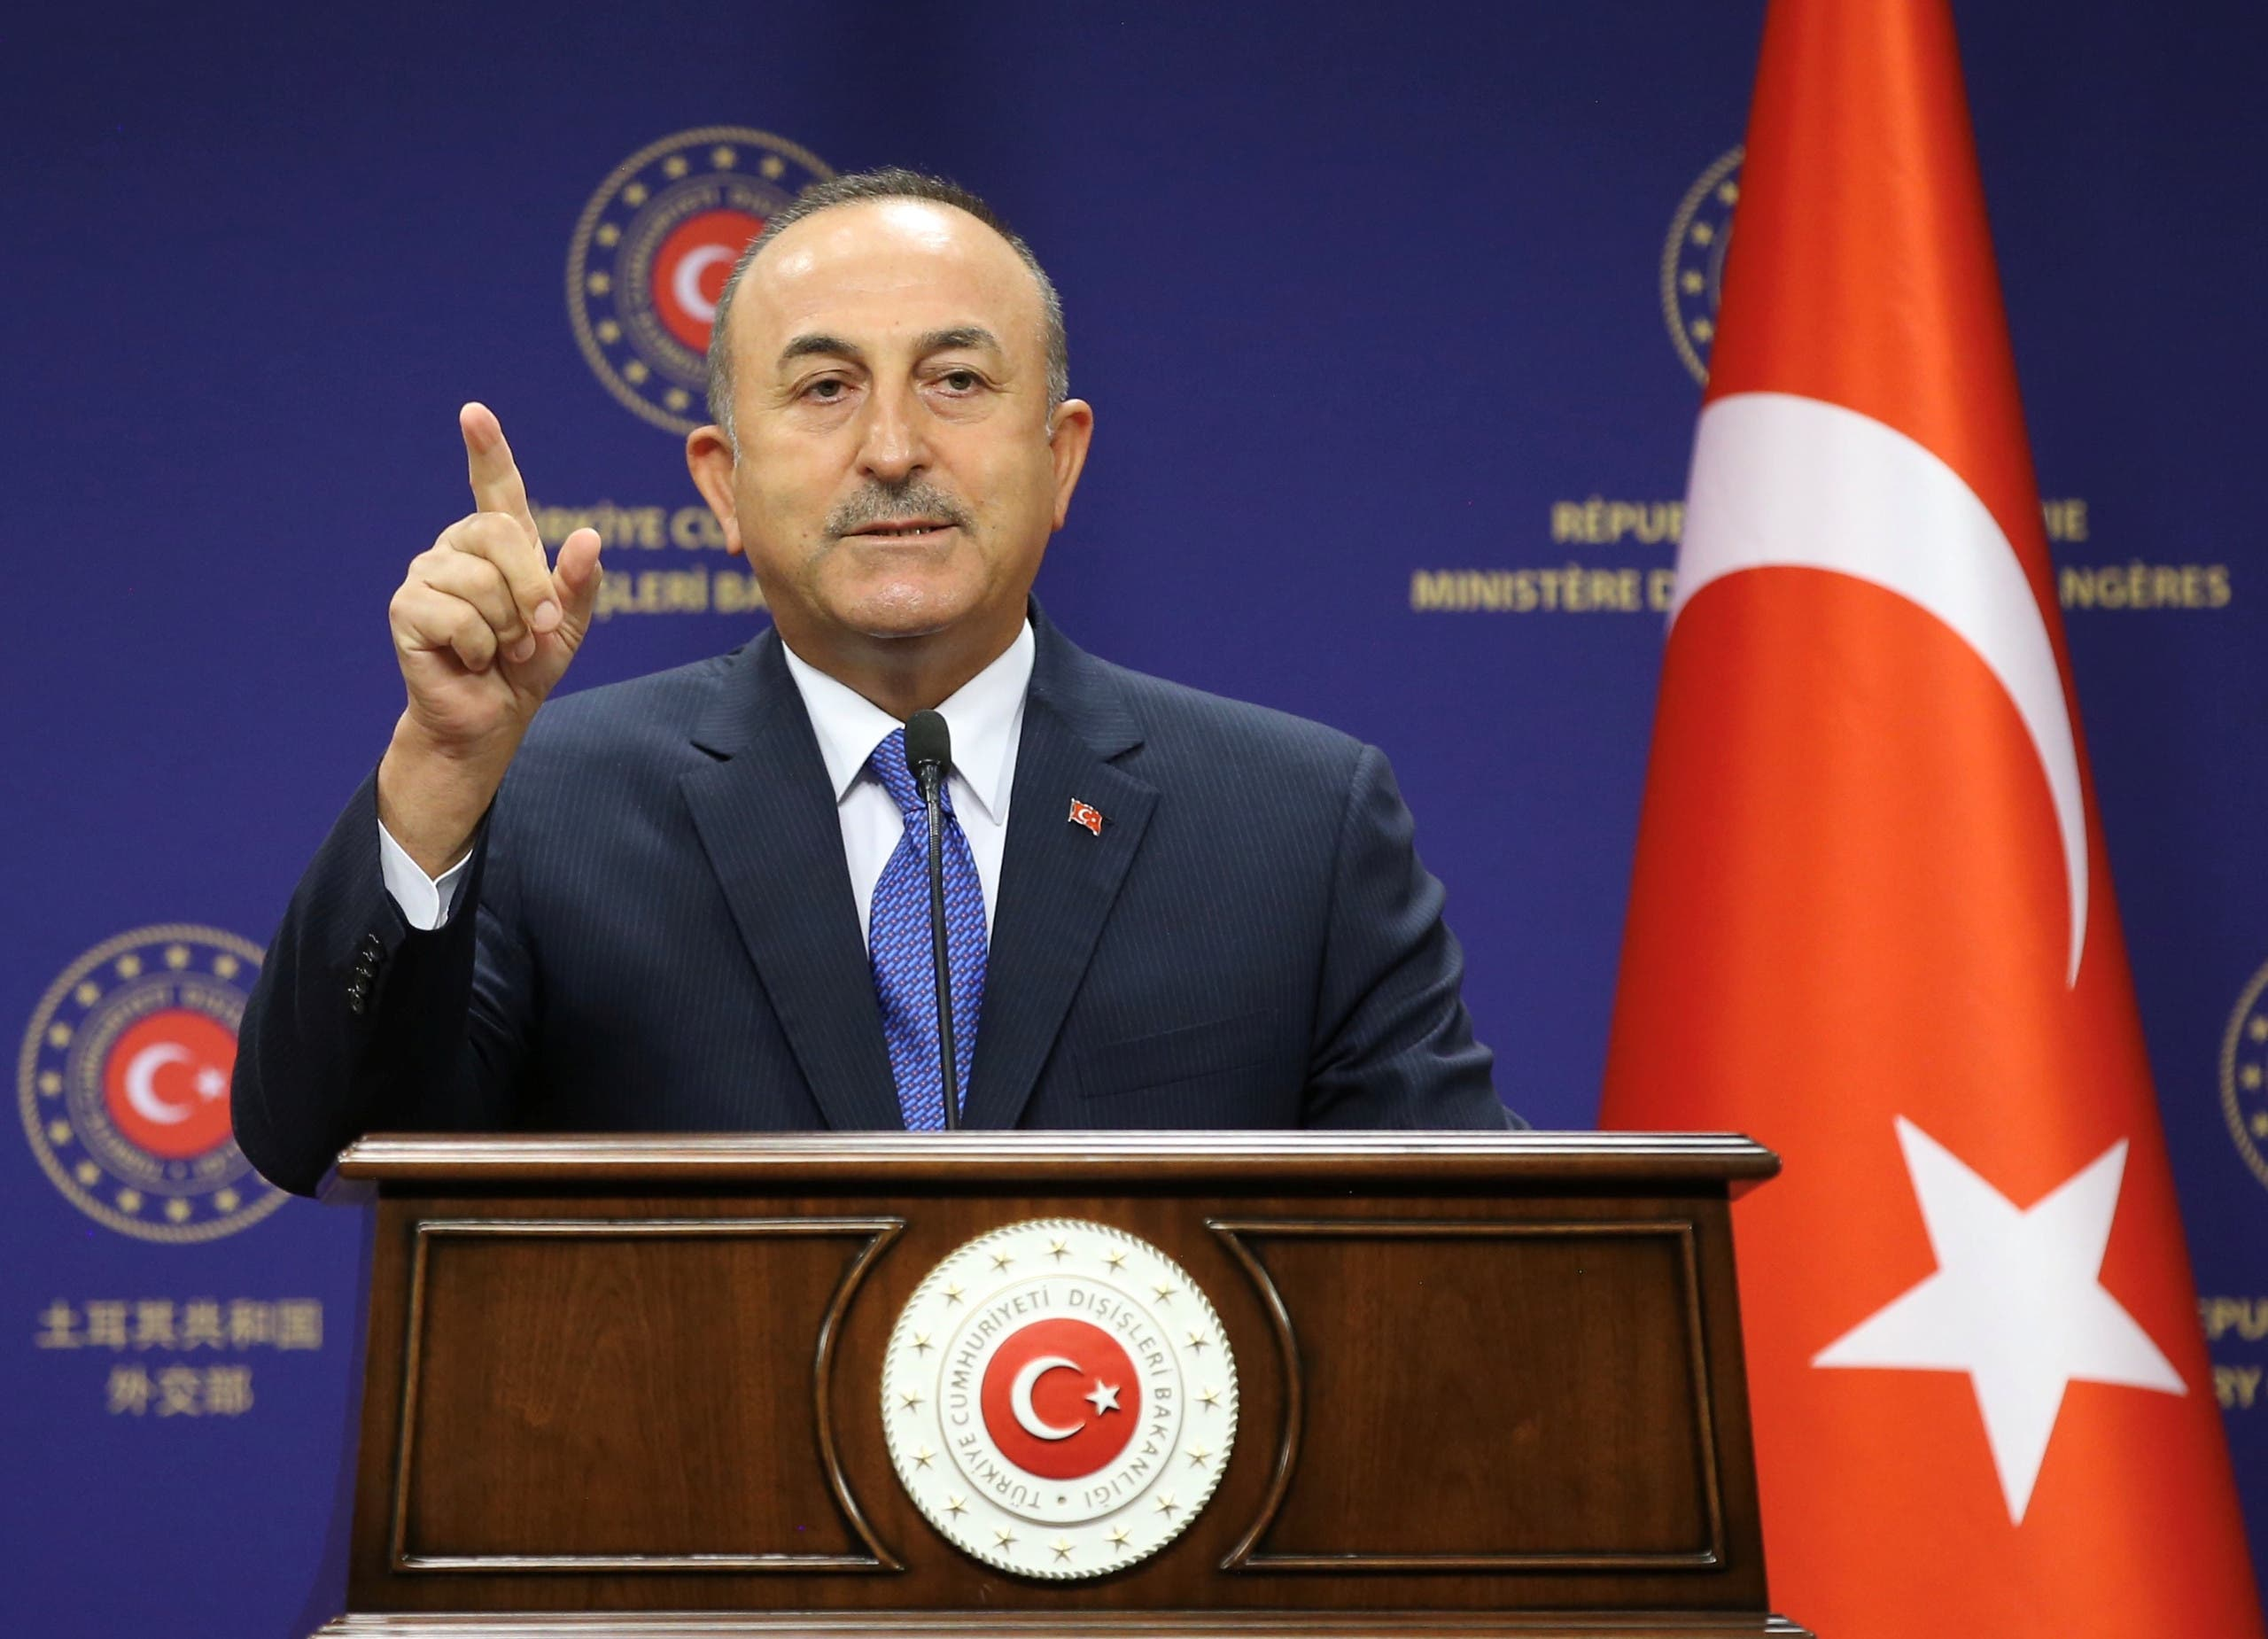 Turkish Foreign Minister Mevlut Cavusoglu attends a press conference in Ankara, Turkey, on August 25, 2020. (Reuters)